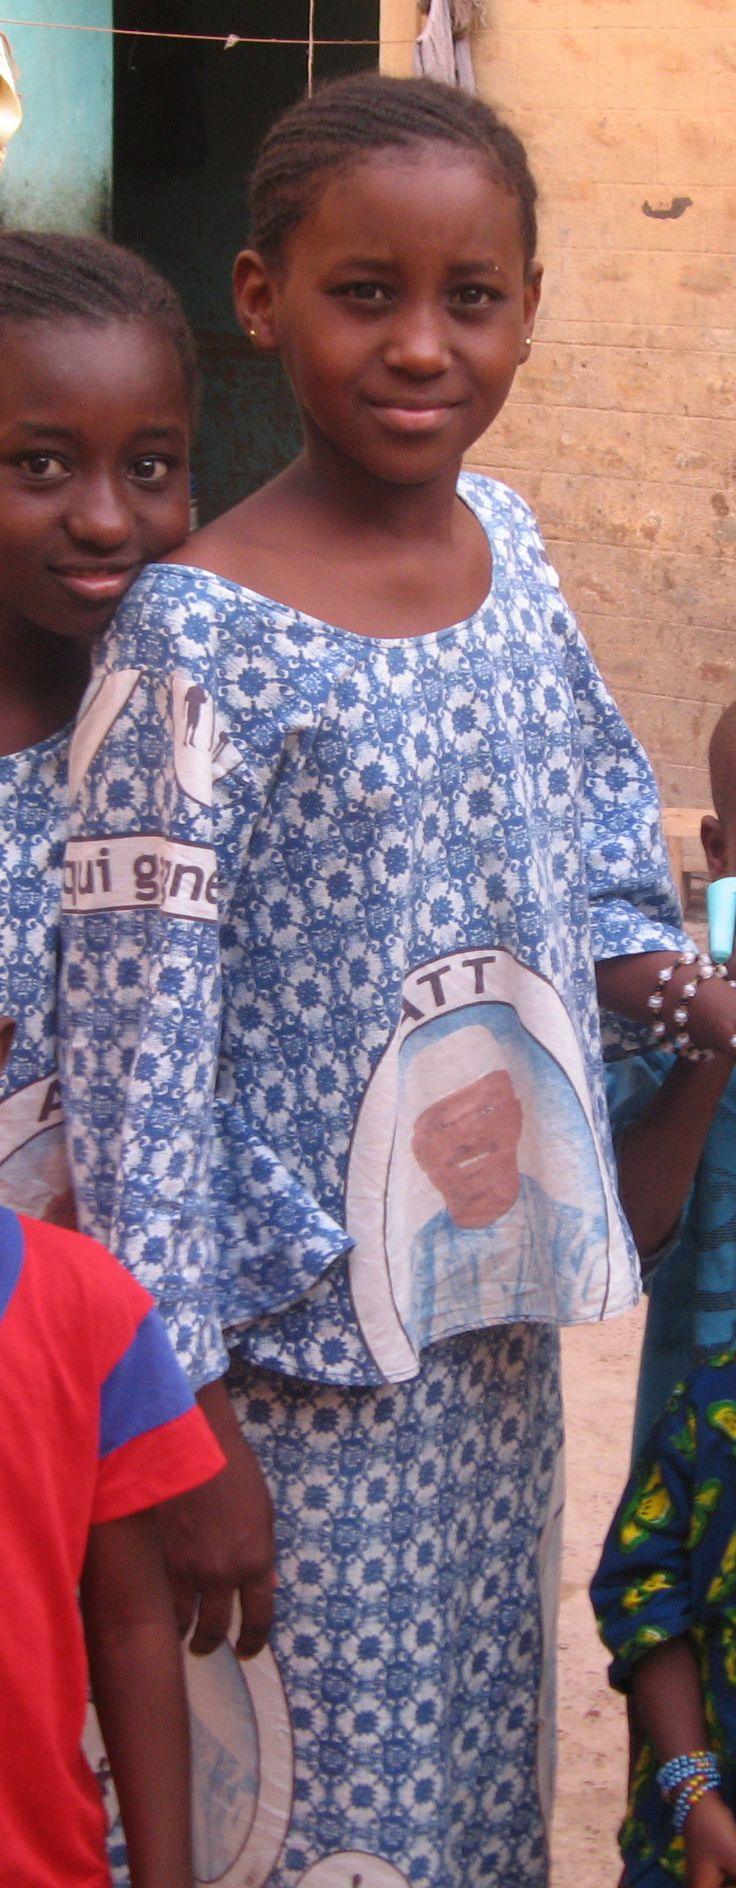 Malian girls wearing dresses made from campaign fabric from President Amadou Toumani Toure's 2007 re-election